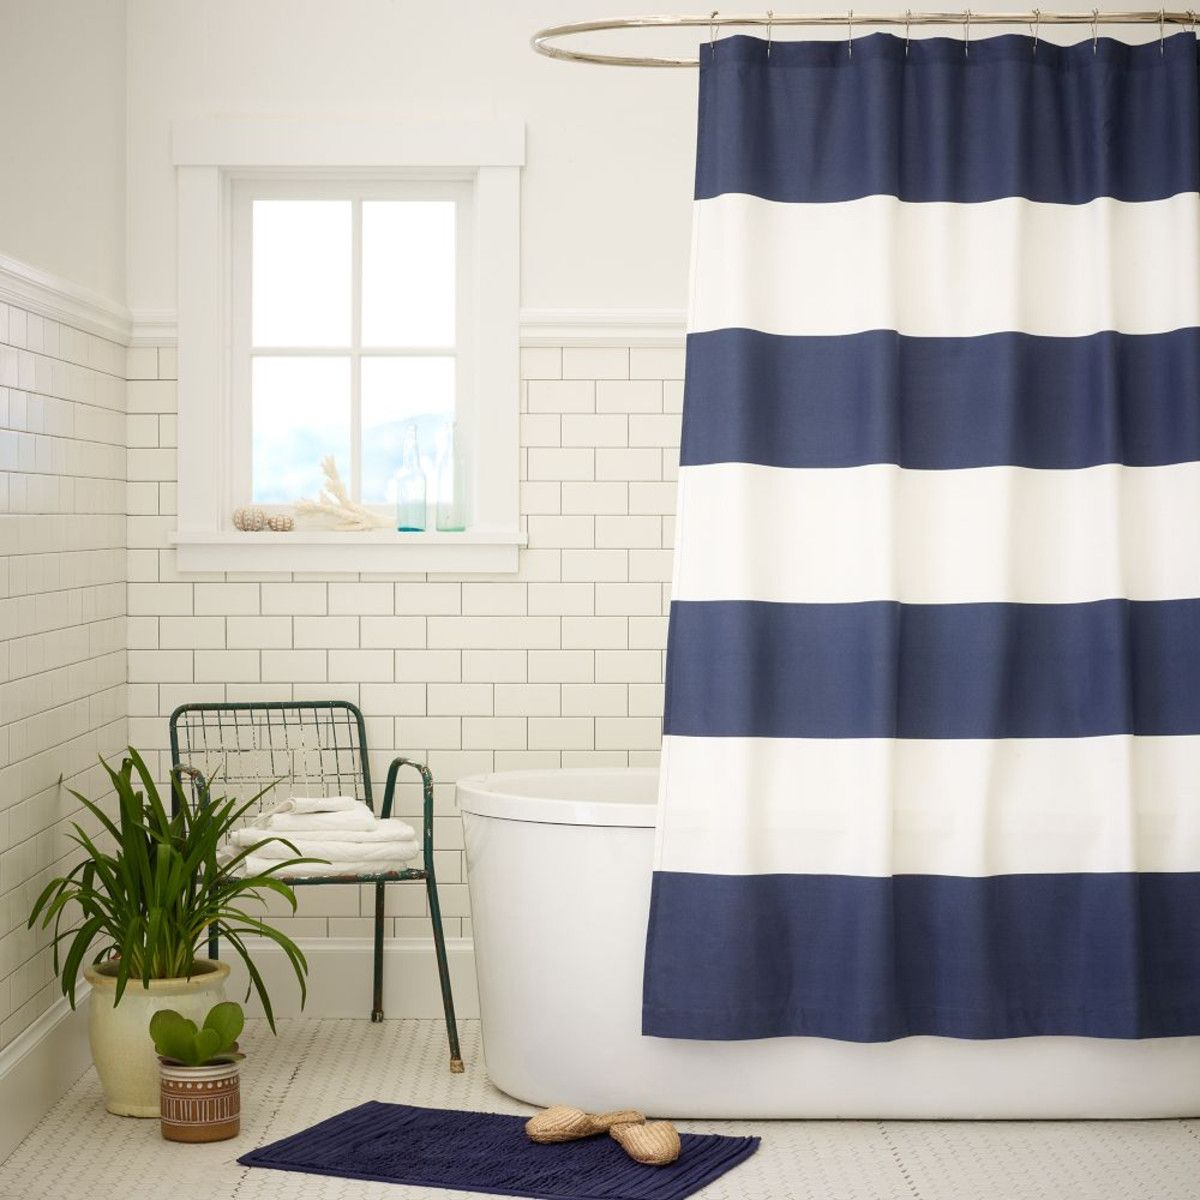 Modern Shower Curtains. Modern Shower Curtains H